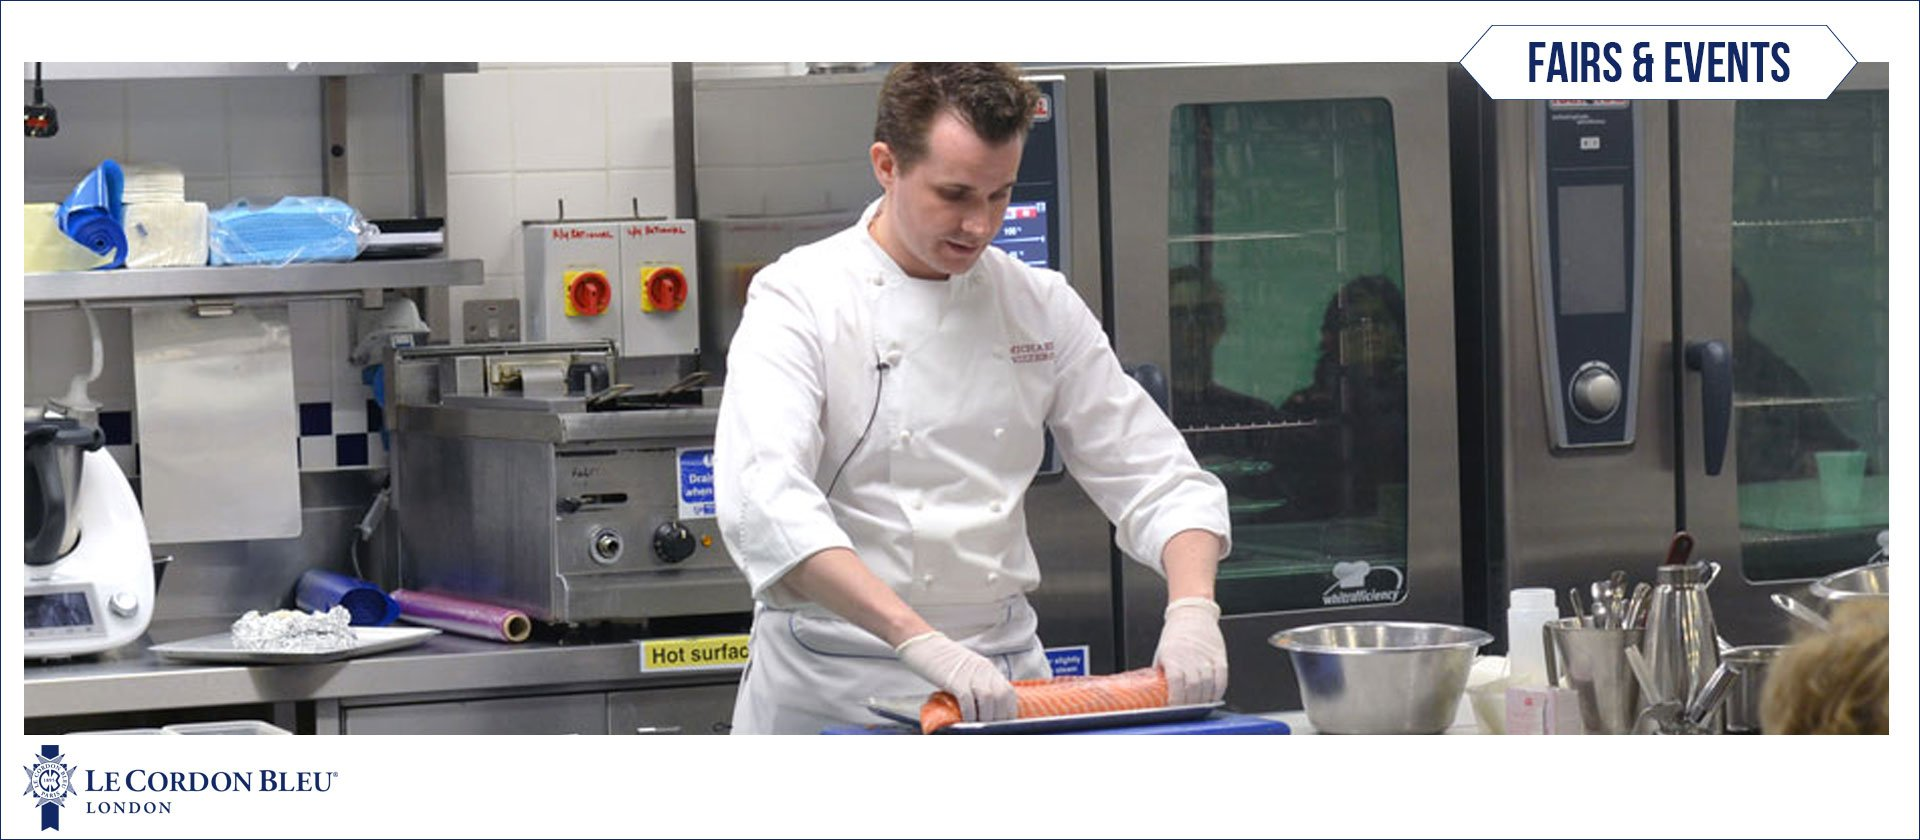 Michael Nizzero cooking demonstration